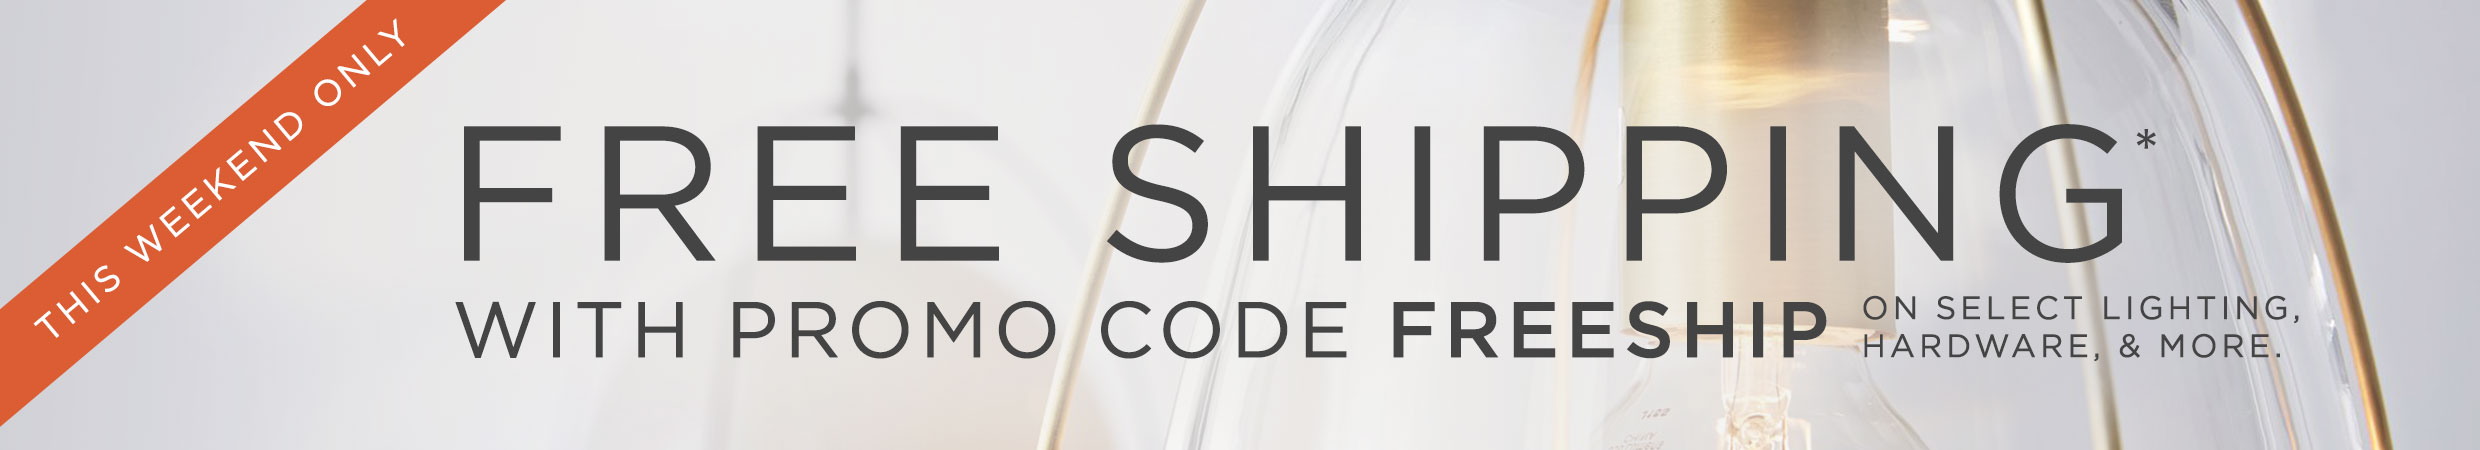 Free Shipping with Promo code FREESHIP